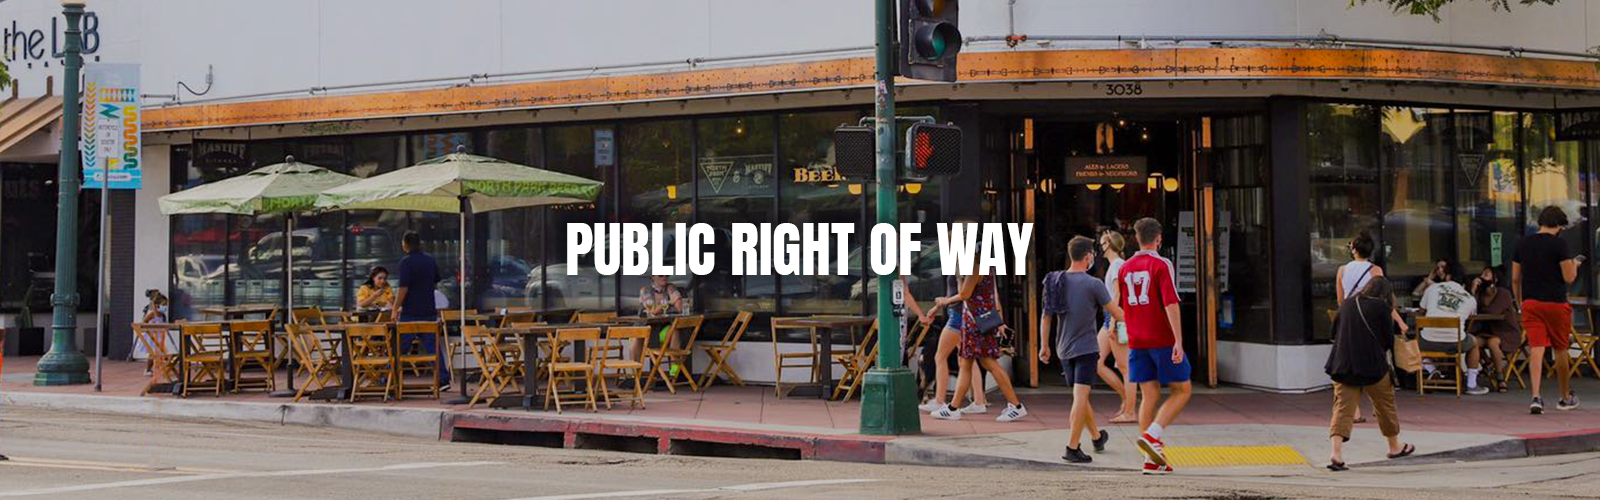 Public Right of Way